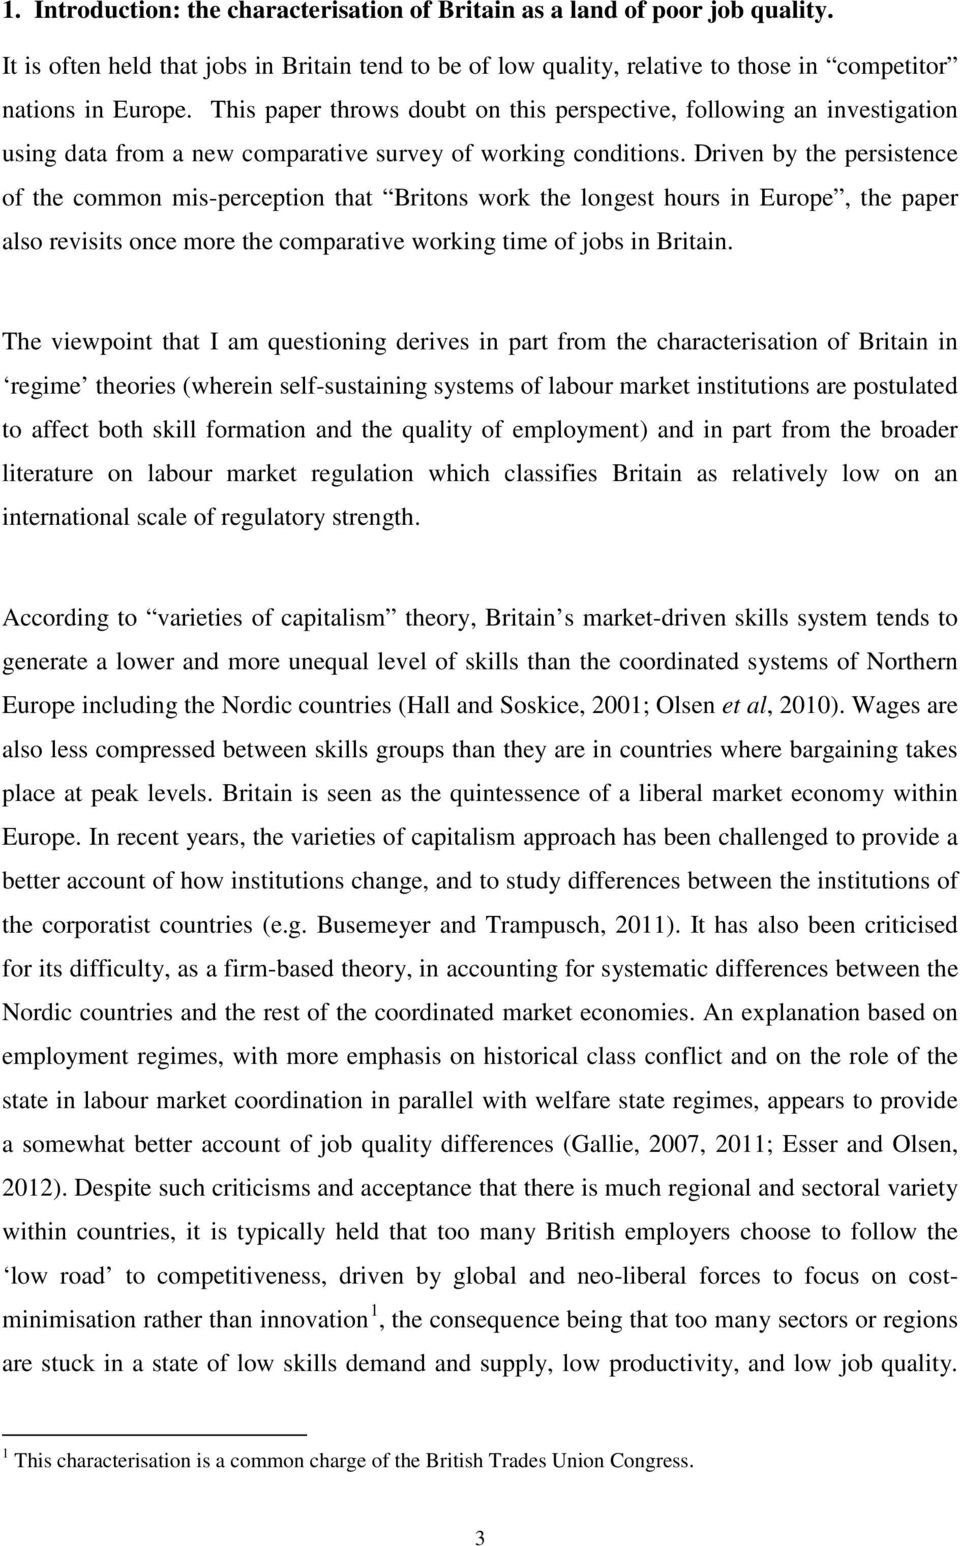 Driven by the persistence of the common mis-perception that Britons work the longest hours in Europe, the paper also revisits once more the comparative working time of jobs in Britain.